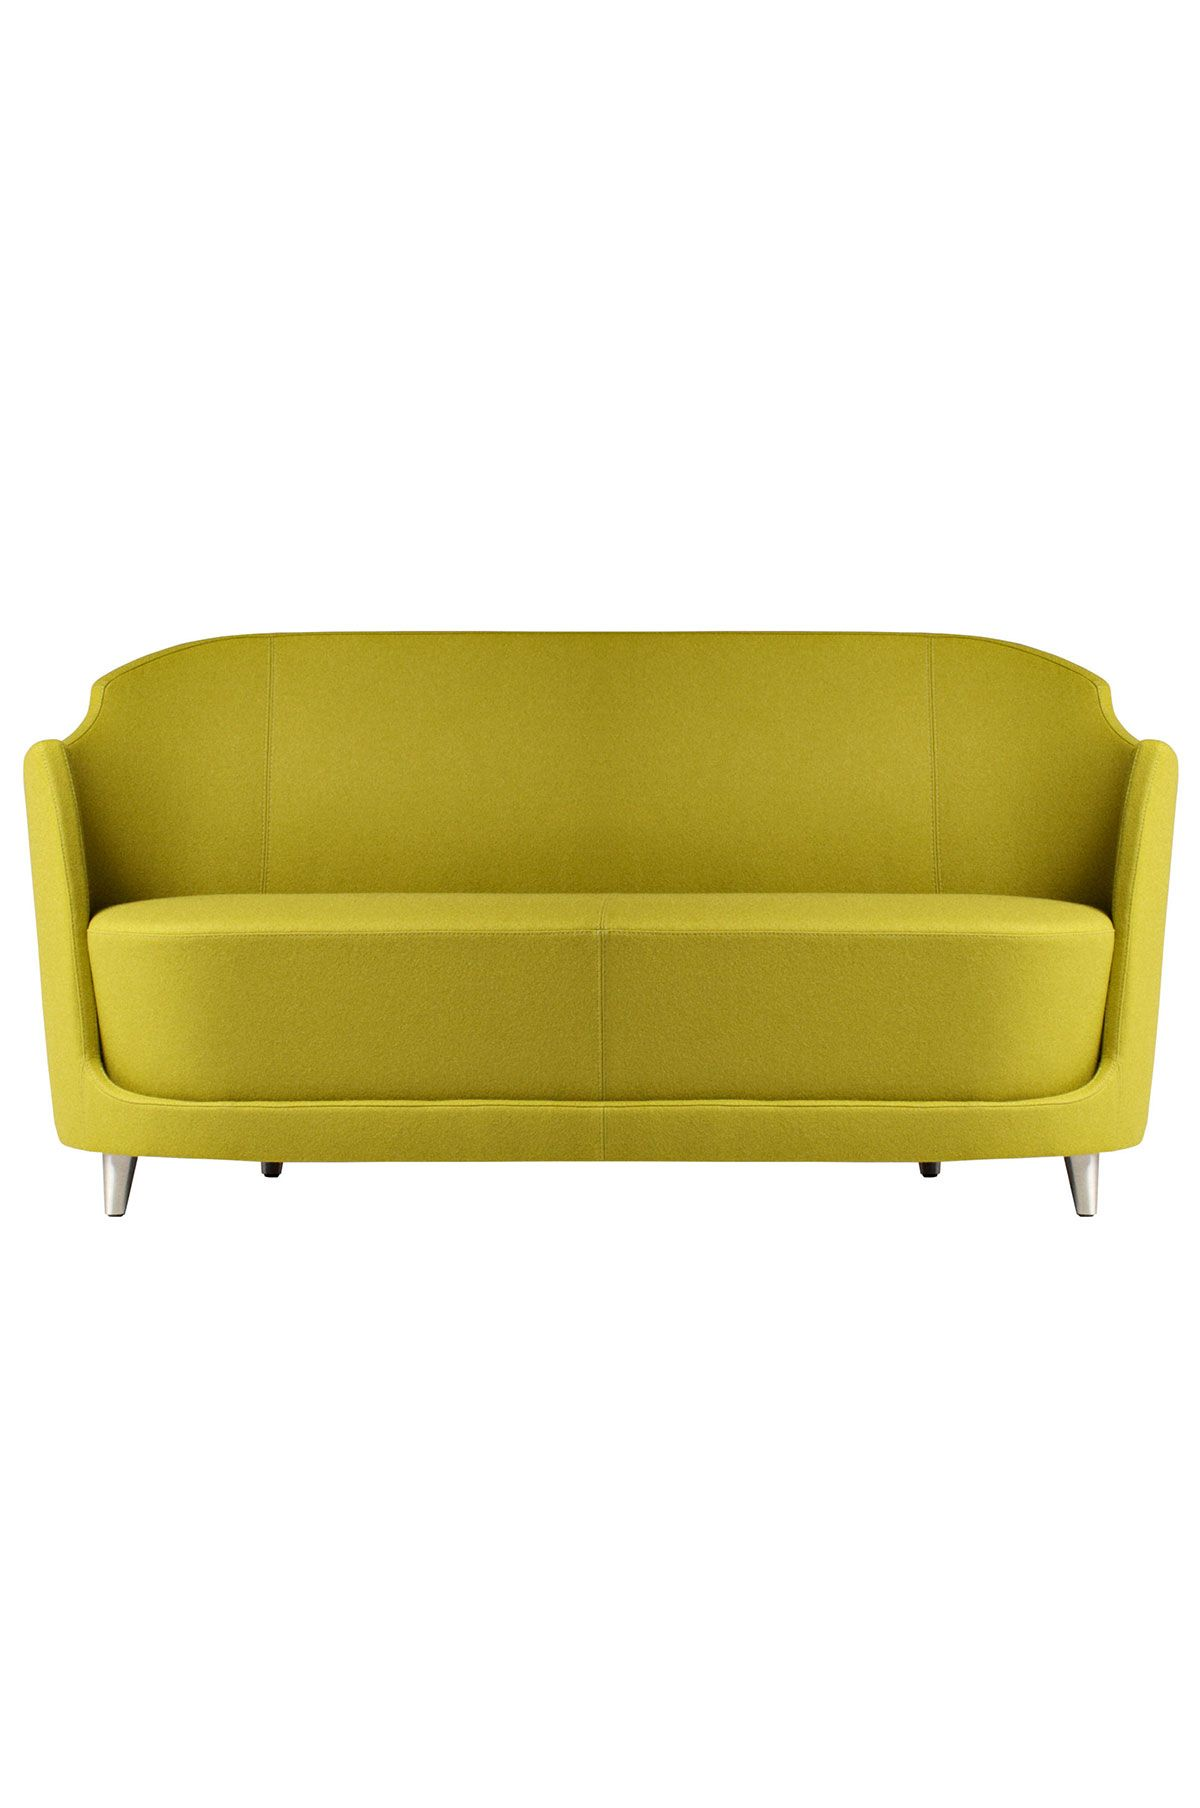 Los Sofas Folies Sofa Designed By Pba Studio For Lacividina Available At